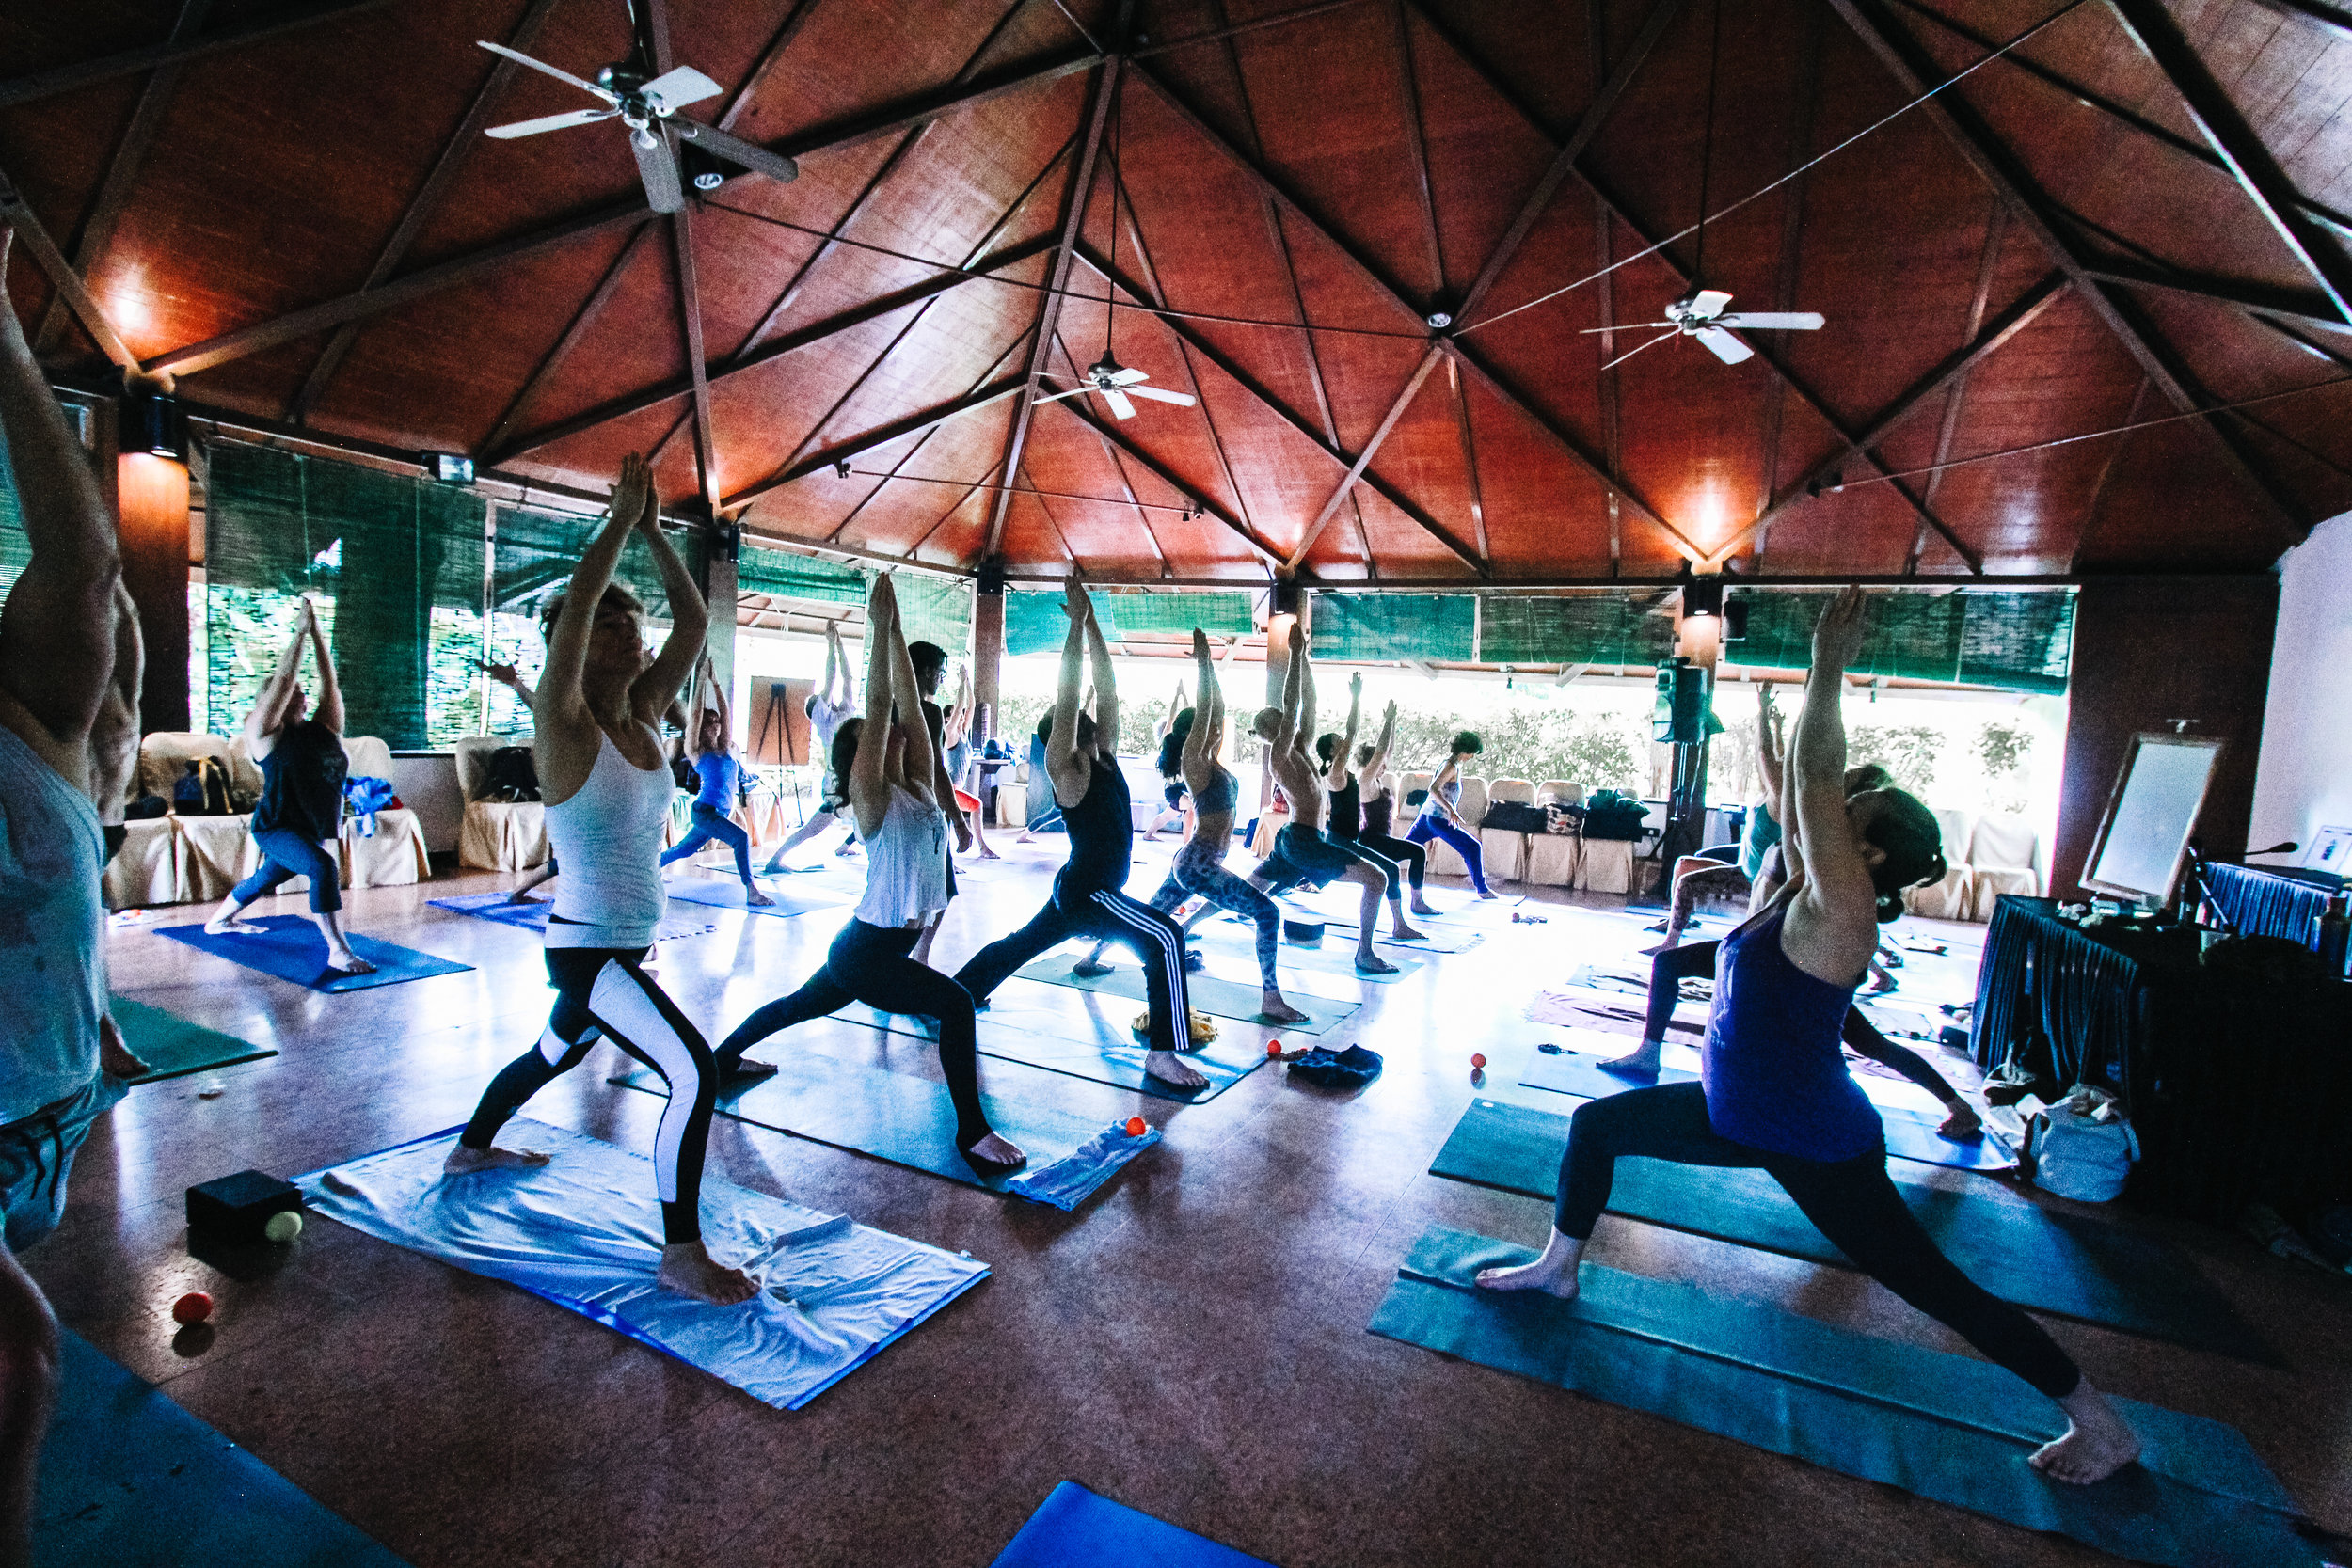 Vinyasa Flow - This is a mixed level Vinyasa class for anyone practicing in either Levels 1 or 2. These are innovative classes reflecting the distilled approach of our experienced teachers…